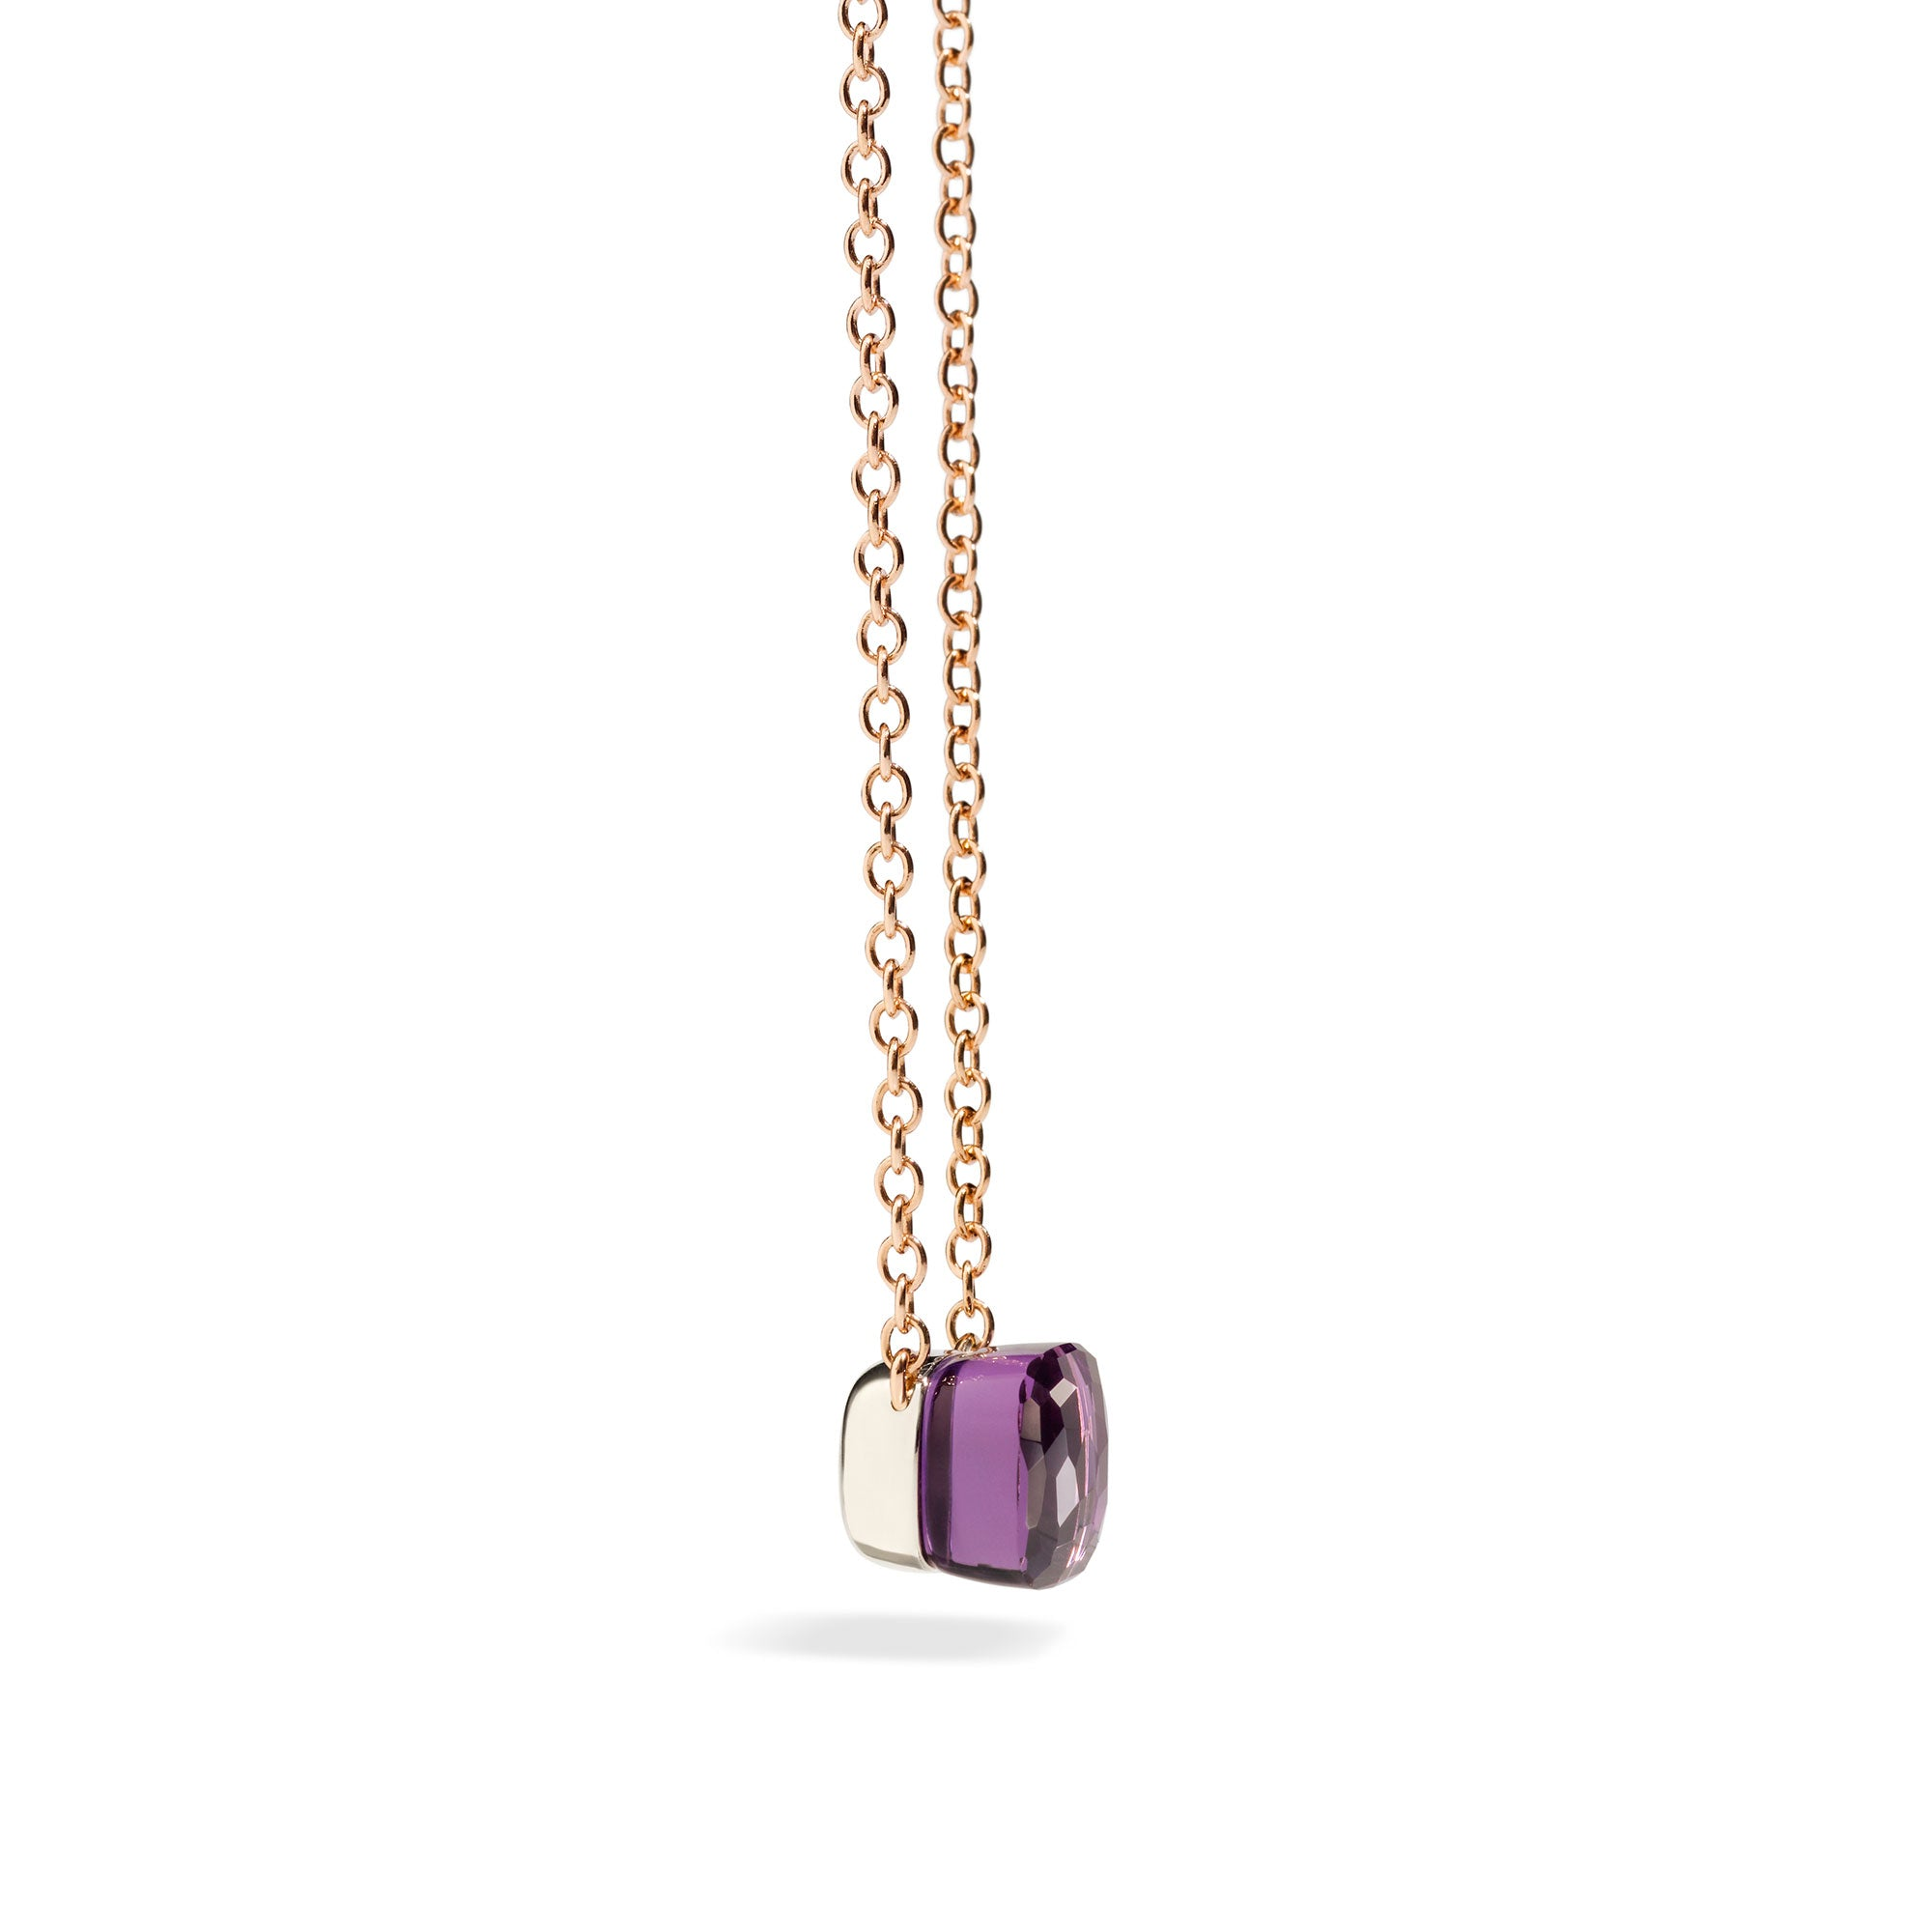 Nudo Necklace with Petit Pendant in 18k Rose and White Gold with Amethyst - Orsini Jewellers NZ